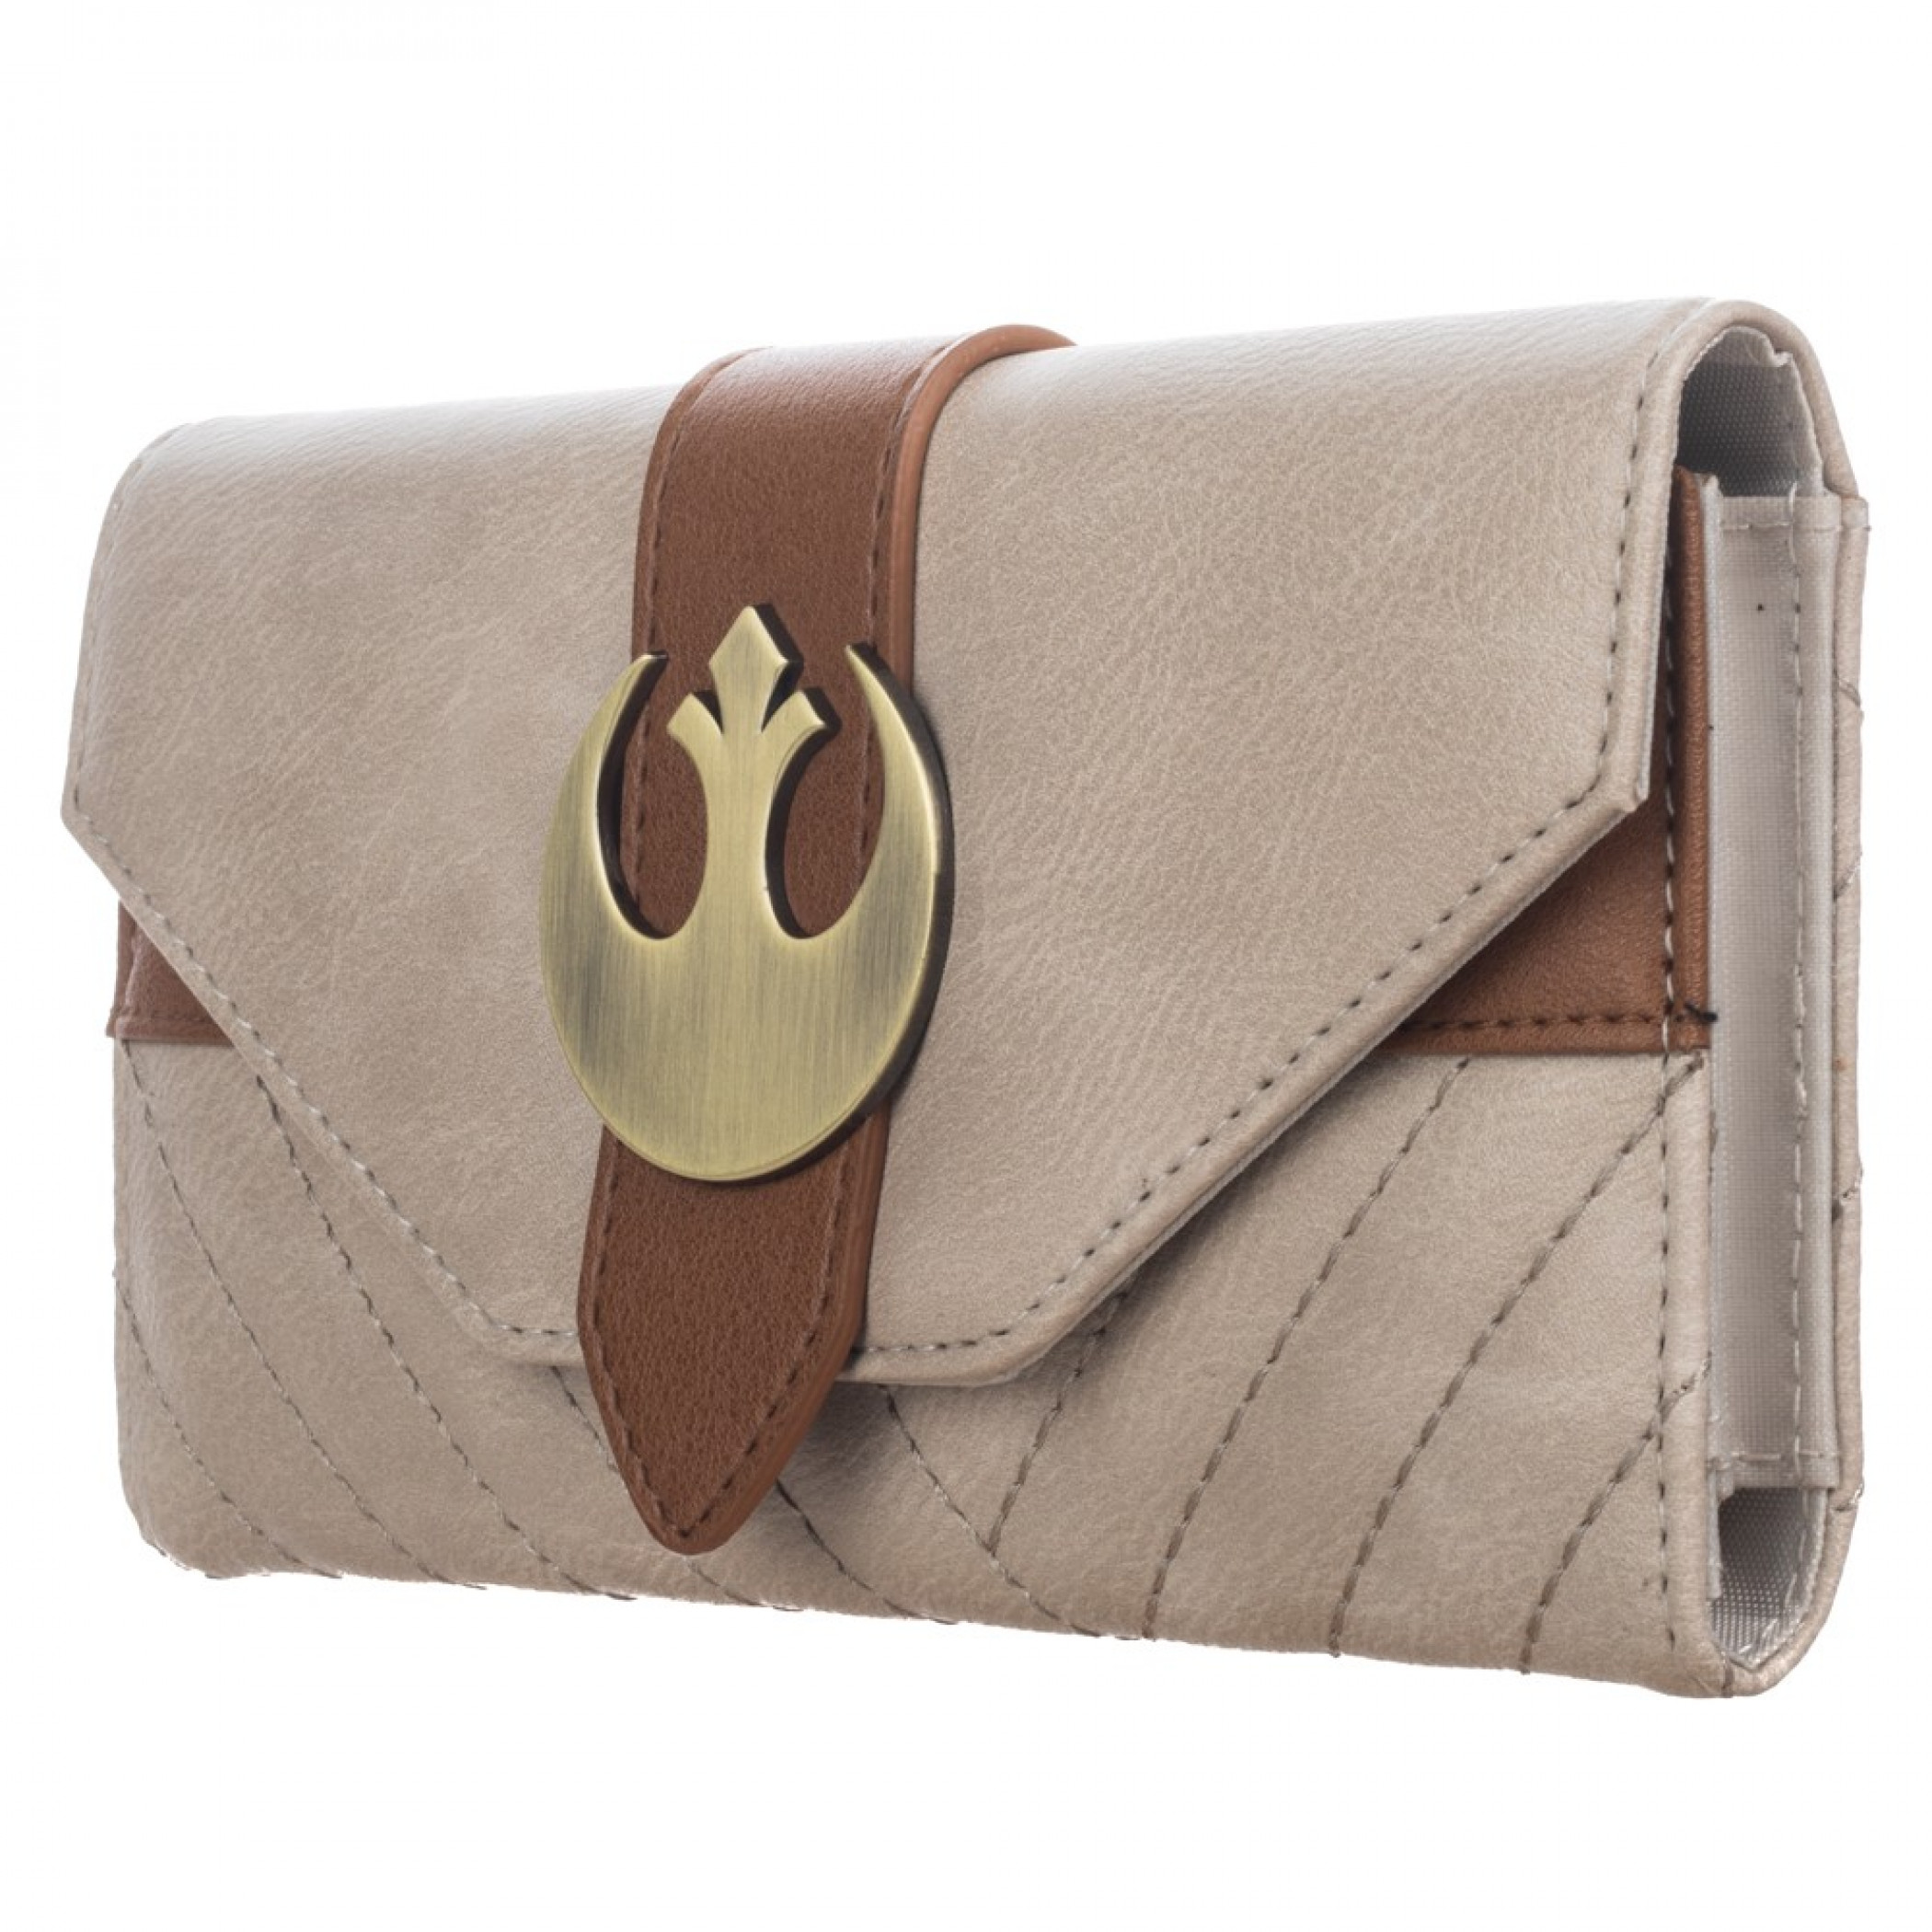 Star Wars Episode 9 Rey Flap Style Wallet